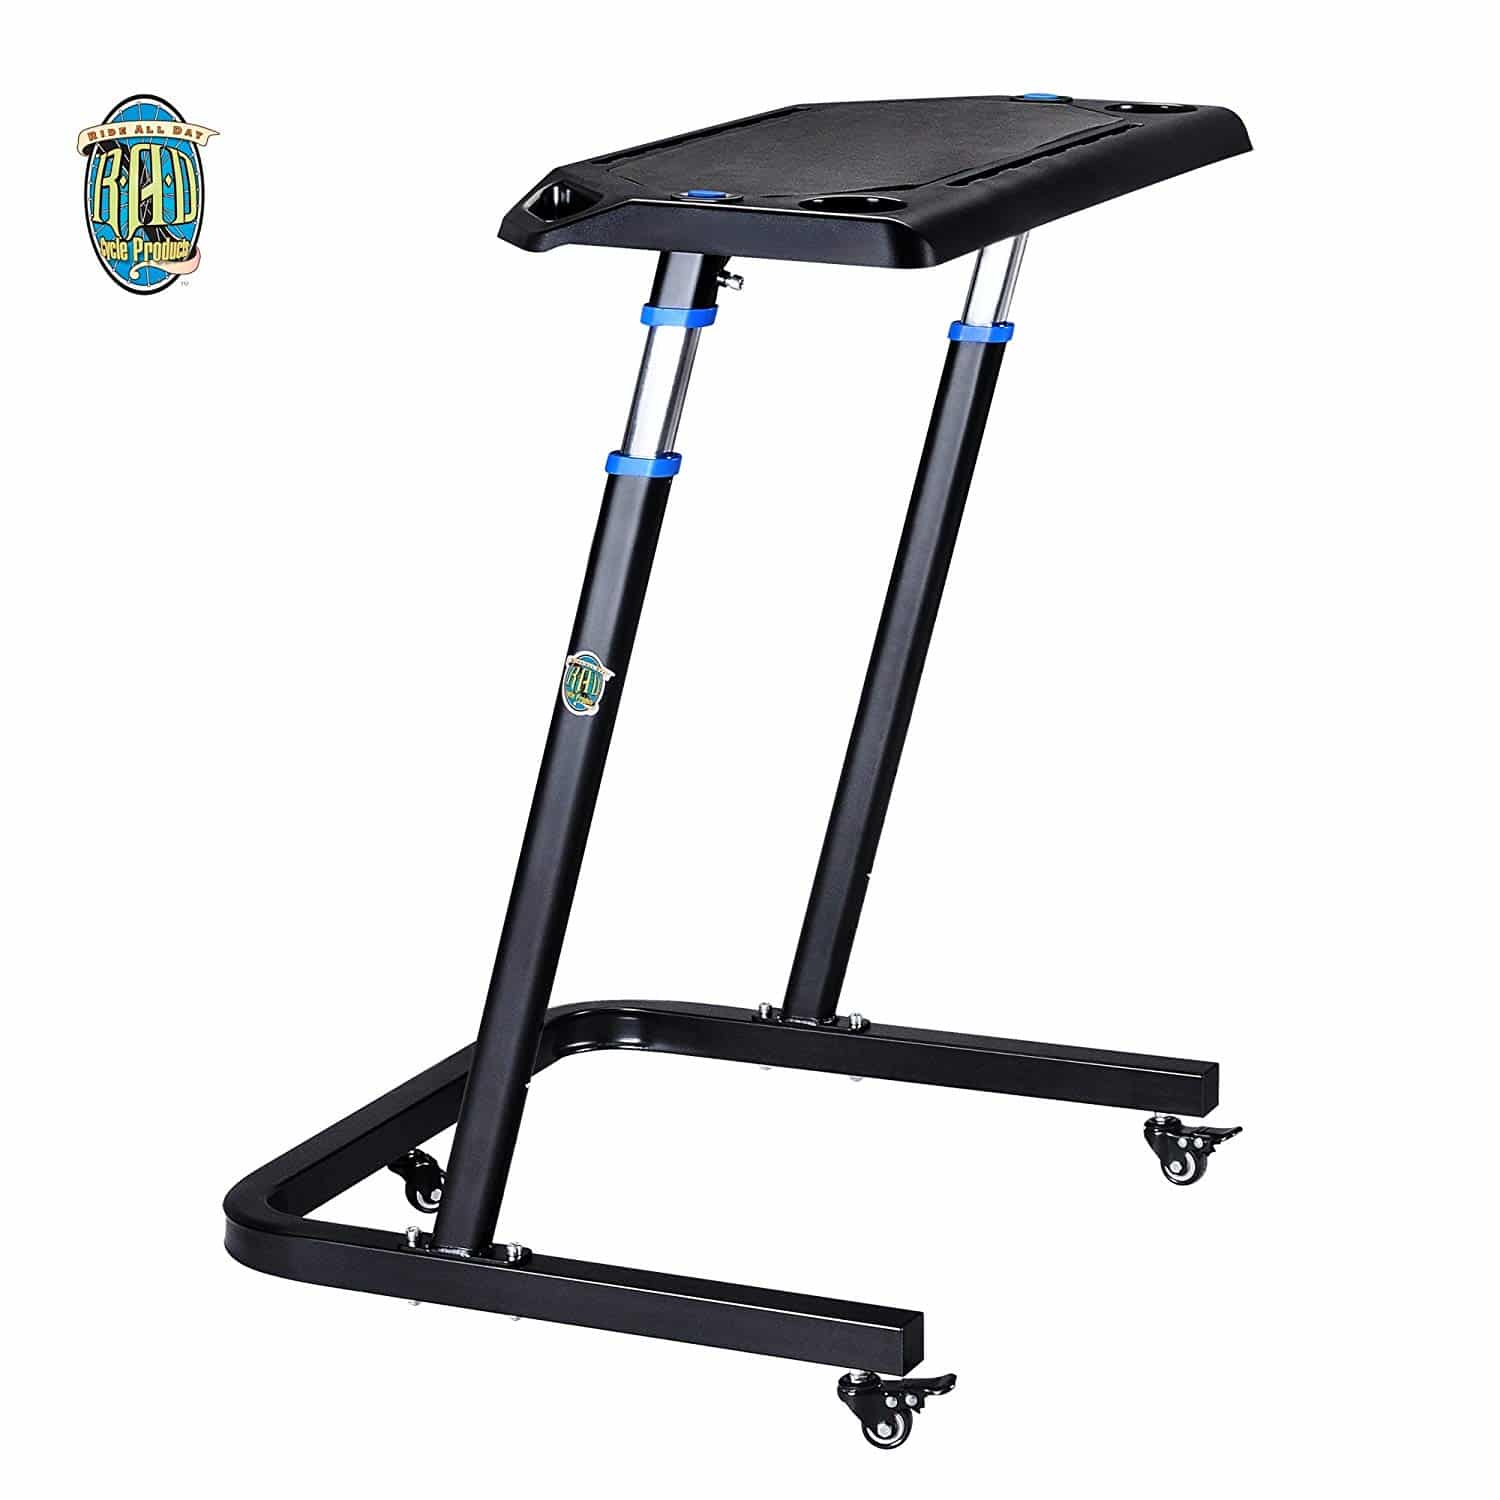 Rad Cycle Portable Workstation Standing Desk